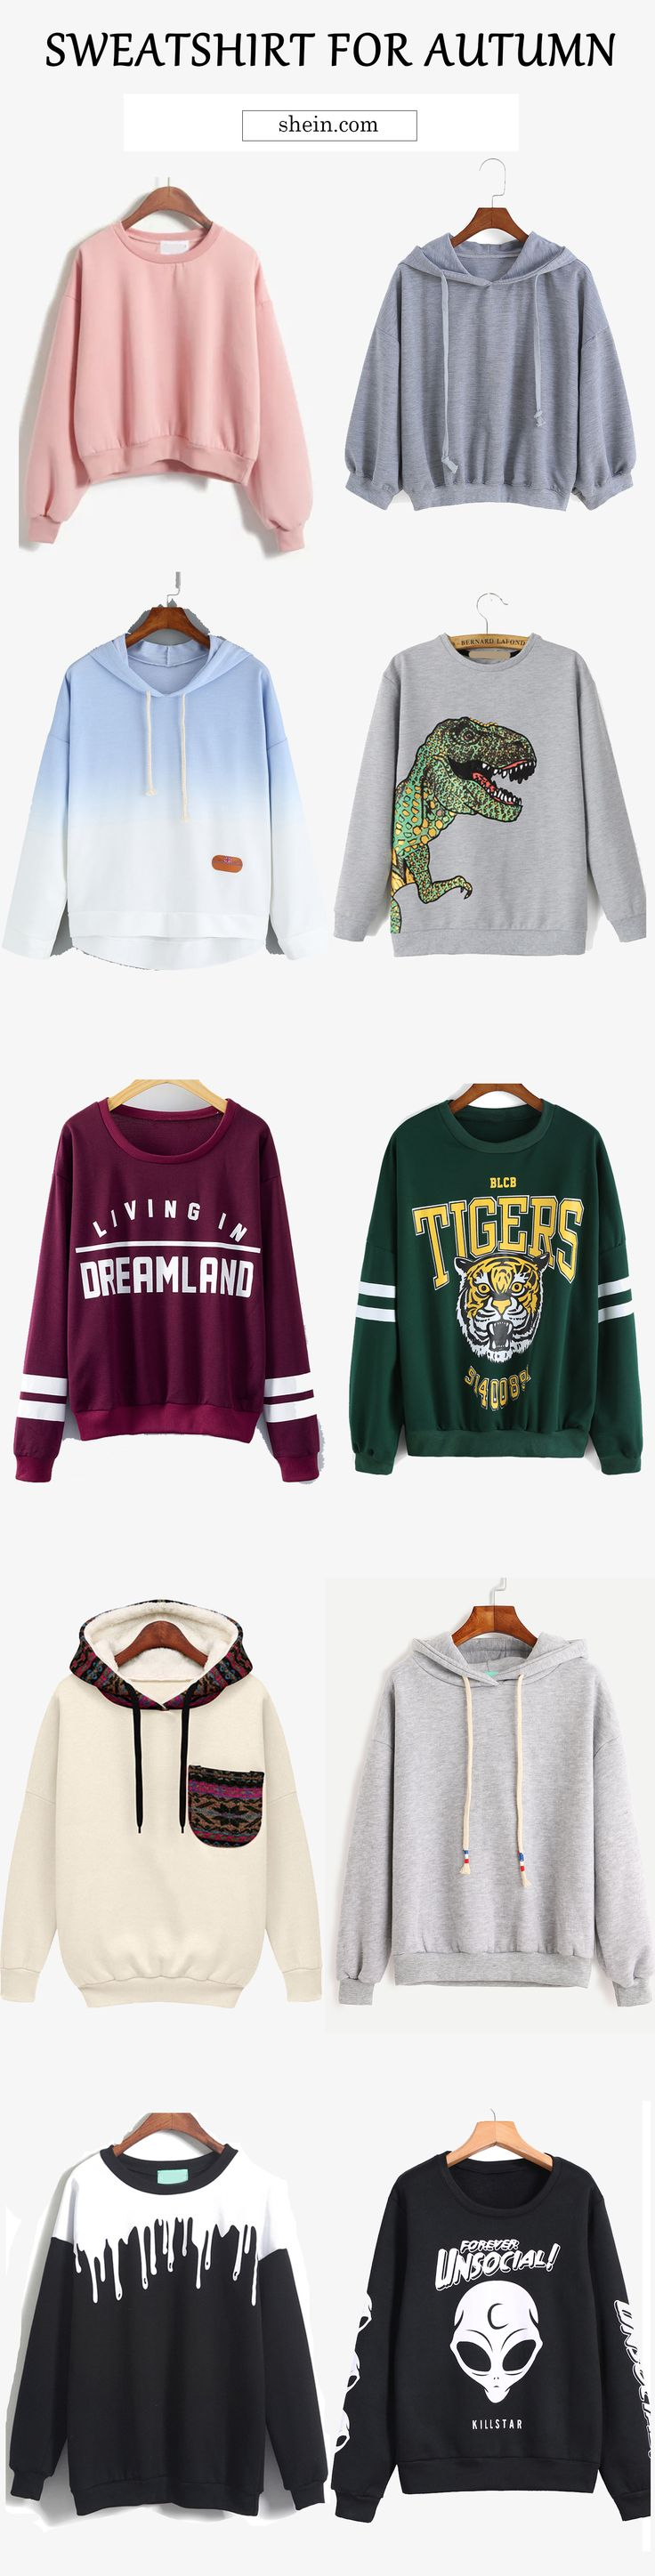 My lovely sporty style! Hot sweatshirt for autumn! Love crew neck sweatshirt with leggings and love loose sweatshirt with skirt!